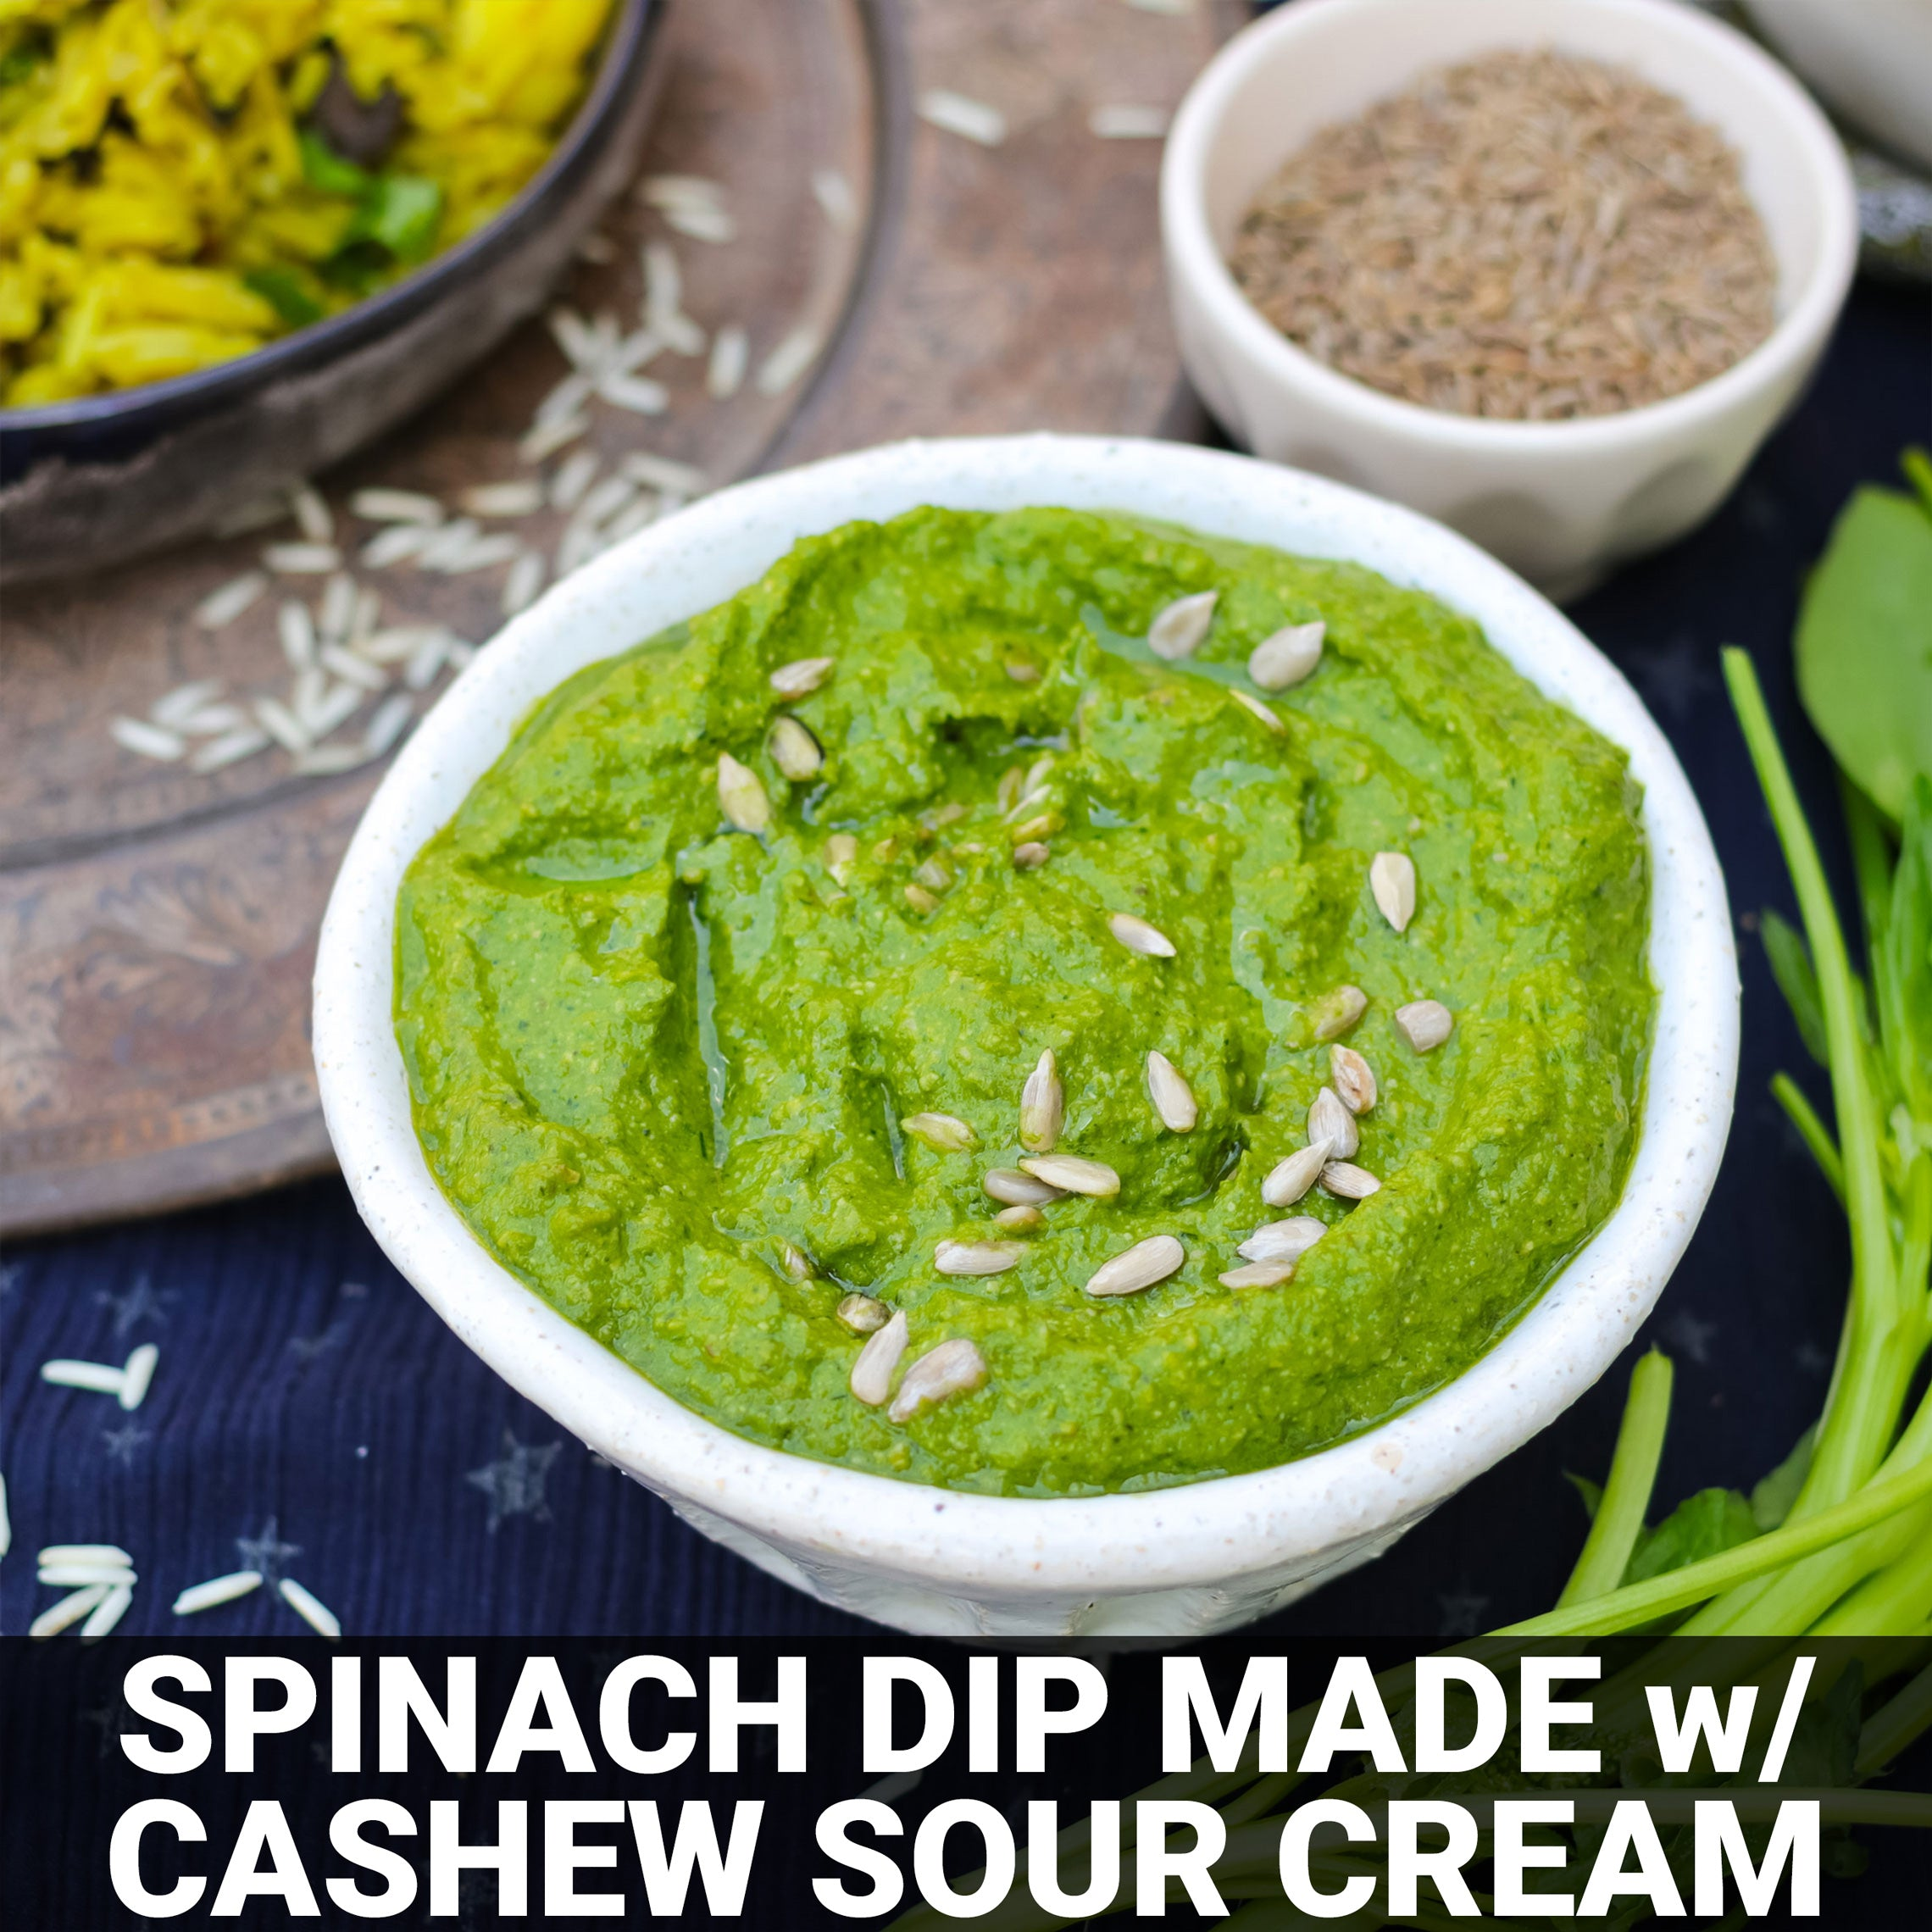 Spinach Dip Made with Cashew Sour Cream Recipe - Foods Alive